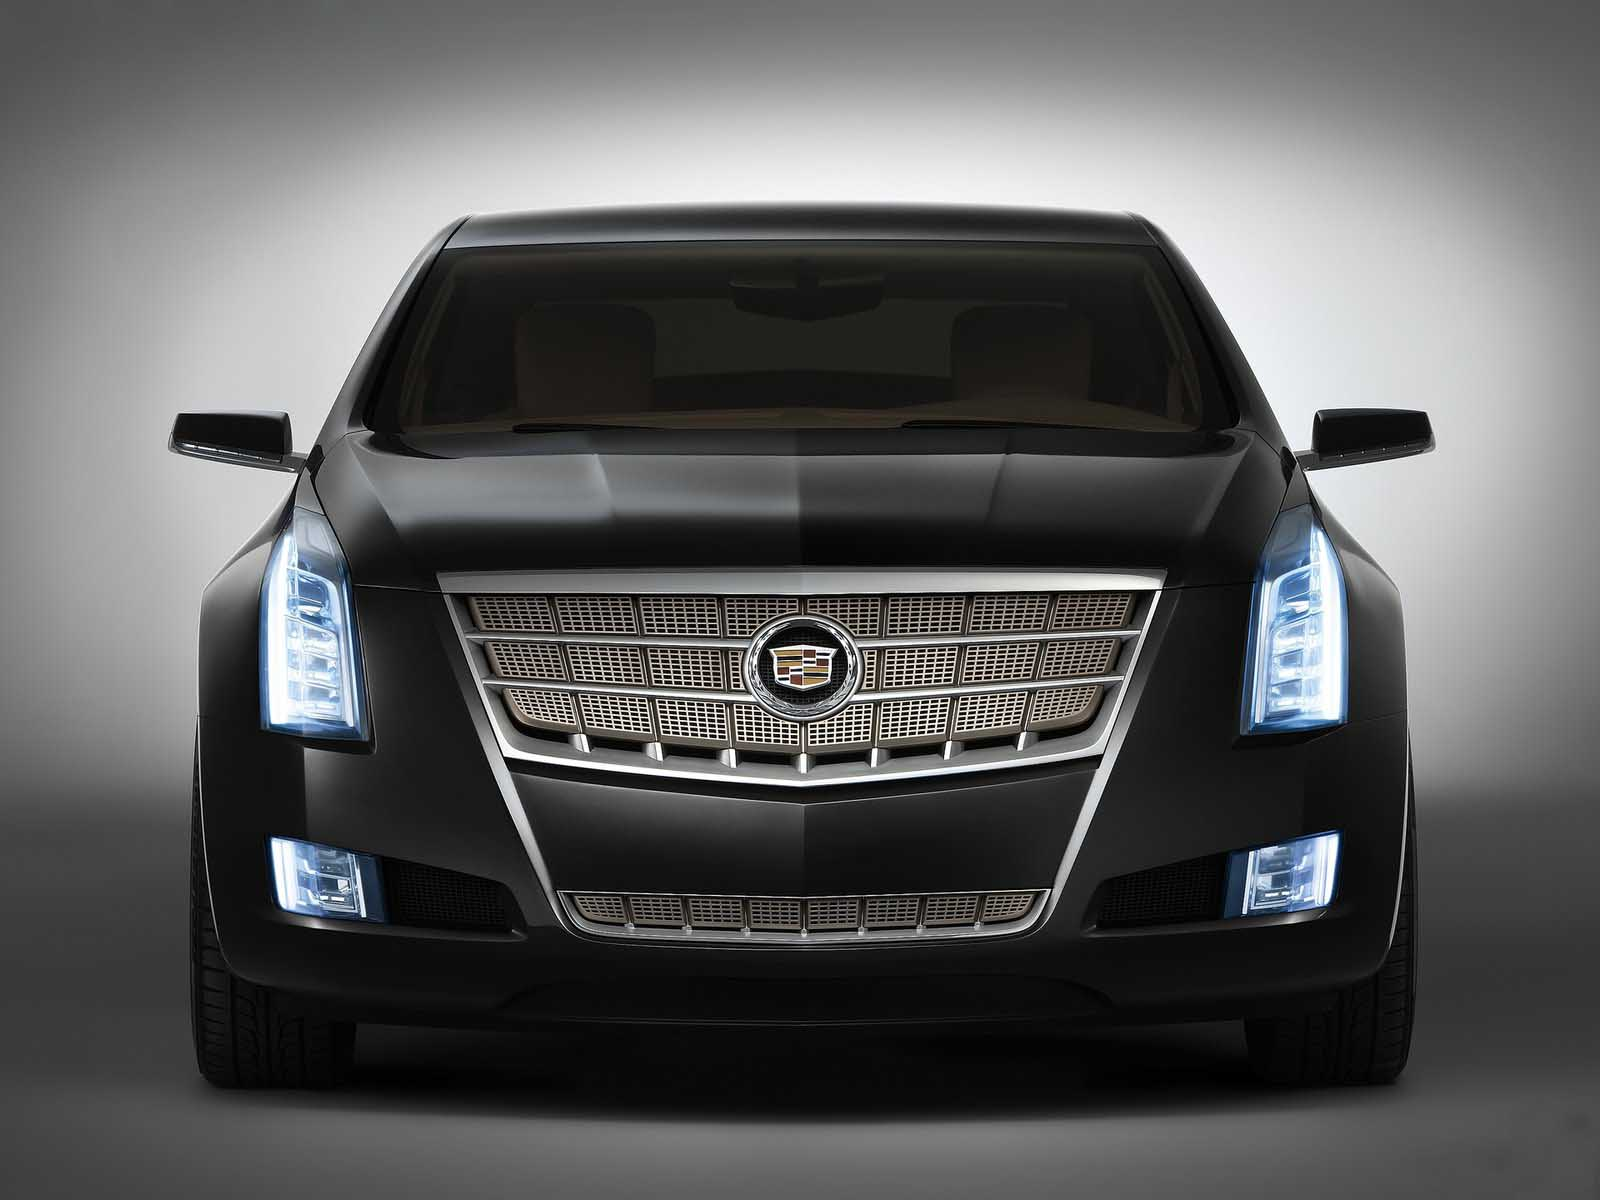 Foto Detalle Frontal Auto Cadillac XTS Platinum Concept Wallpaper For Ios